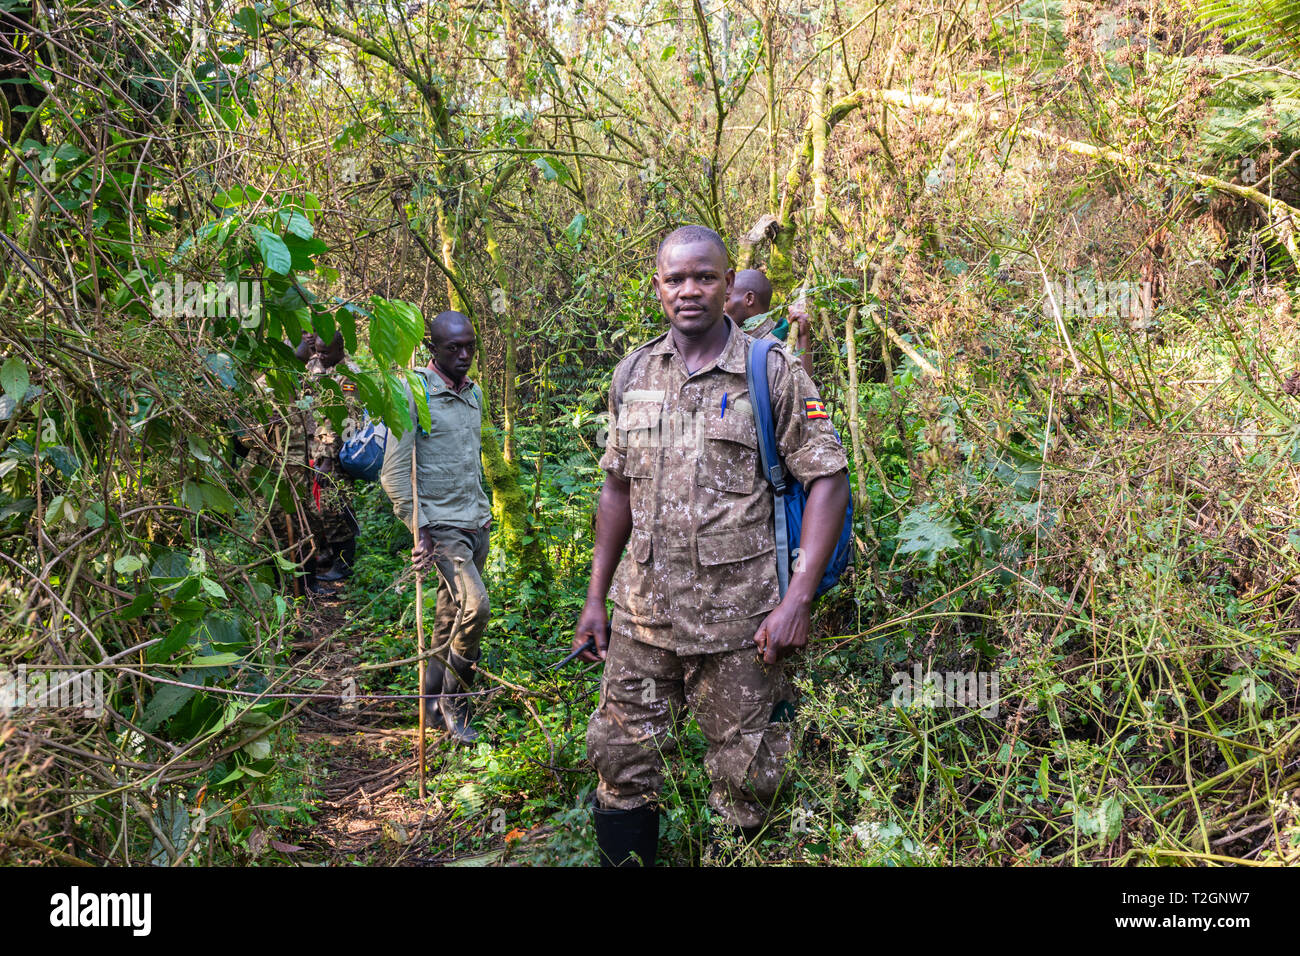 Ugandan guide and trackers on the trail of mountain gorillas in Bwindi Impenetrable Forest National Park in South West Uganda, East Africa - Stock Image